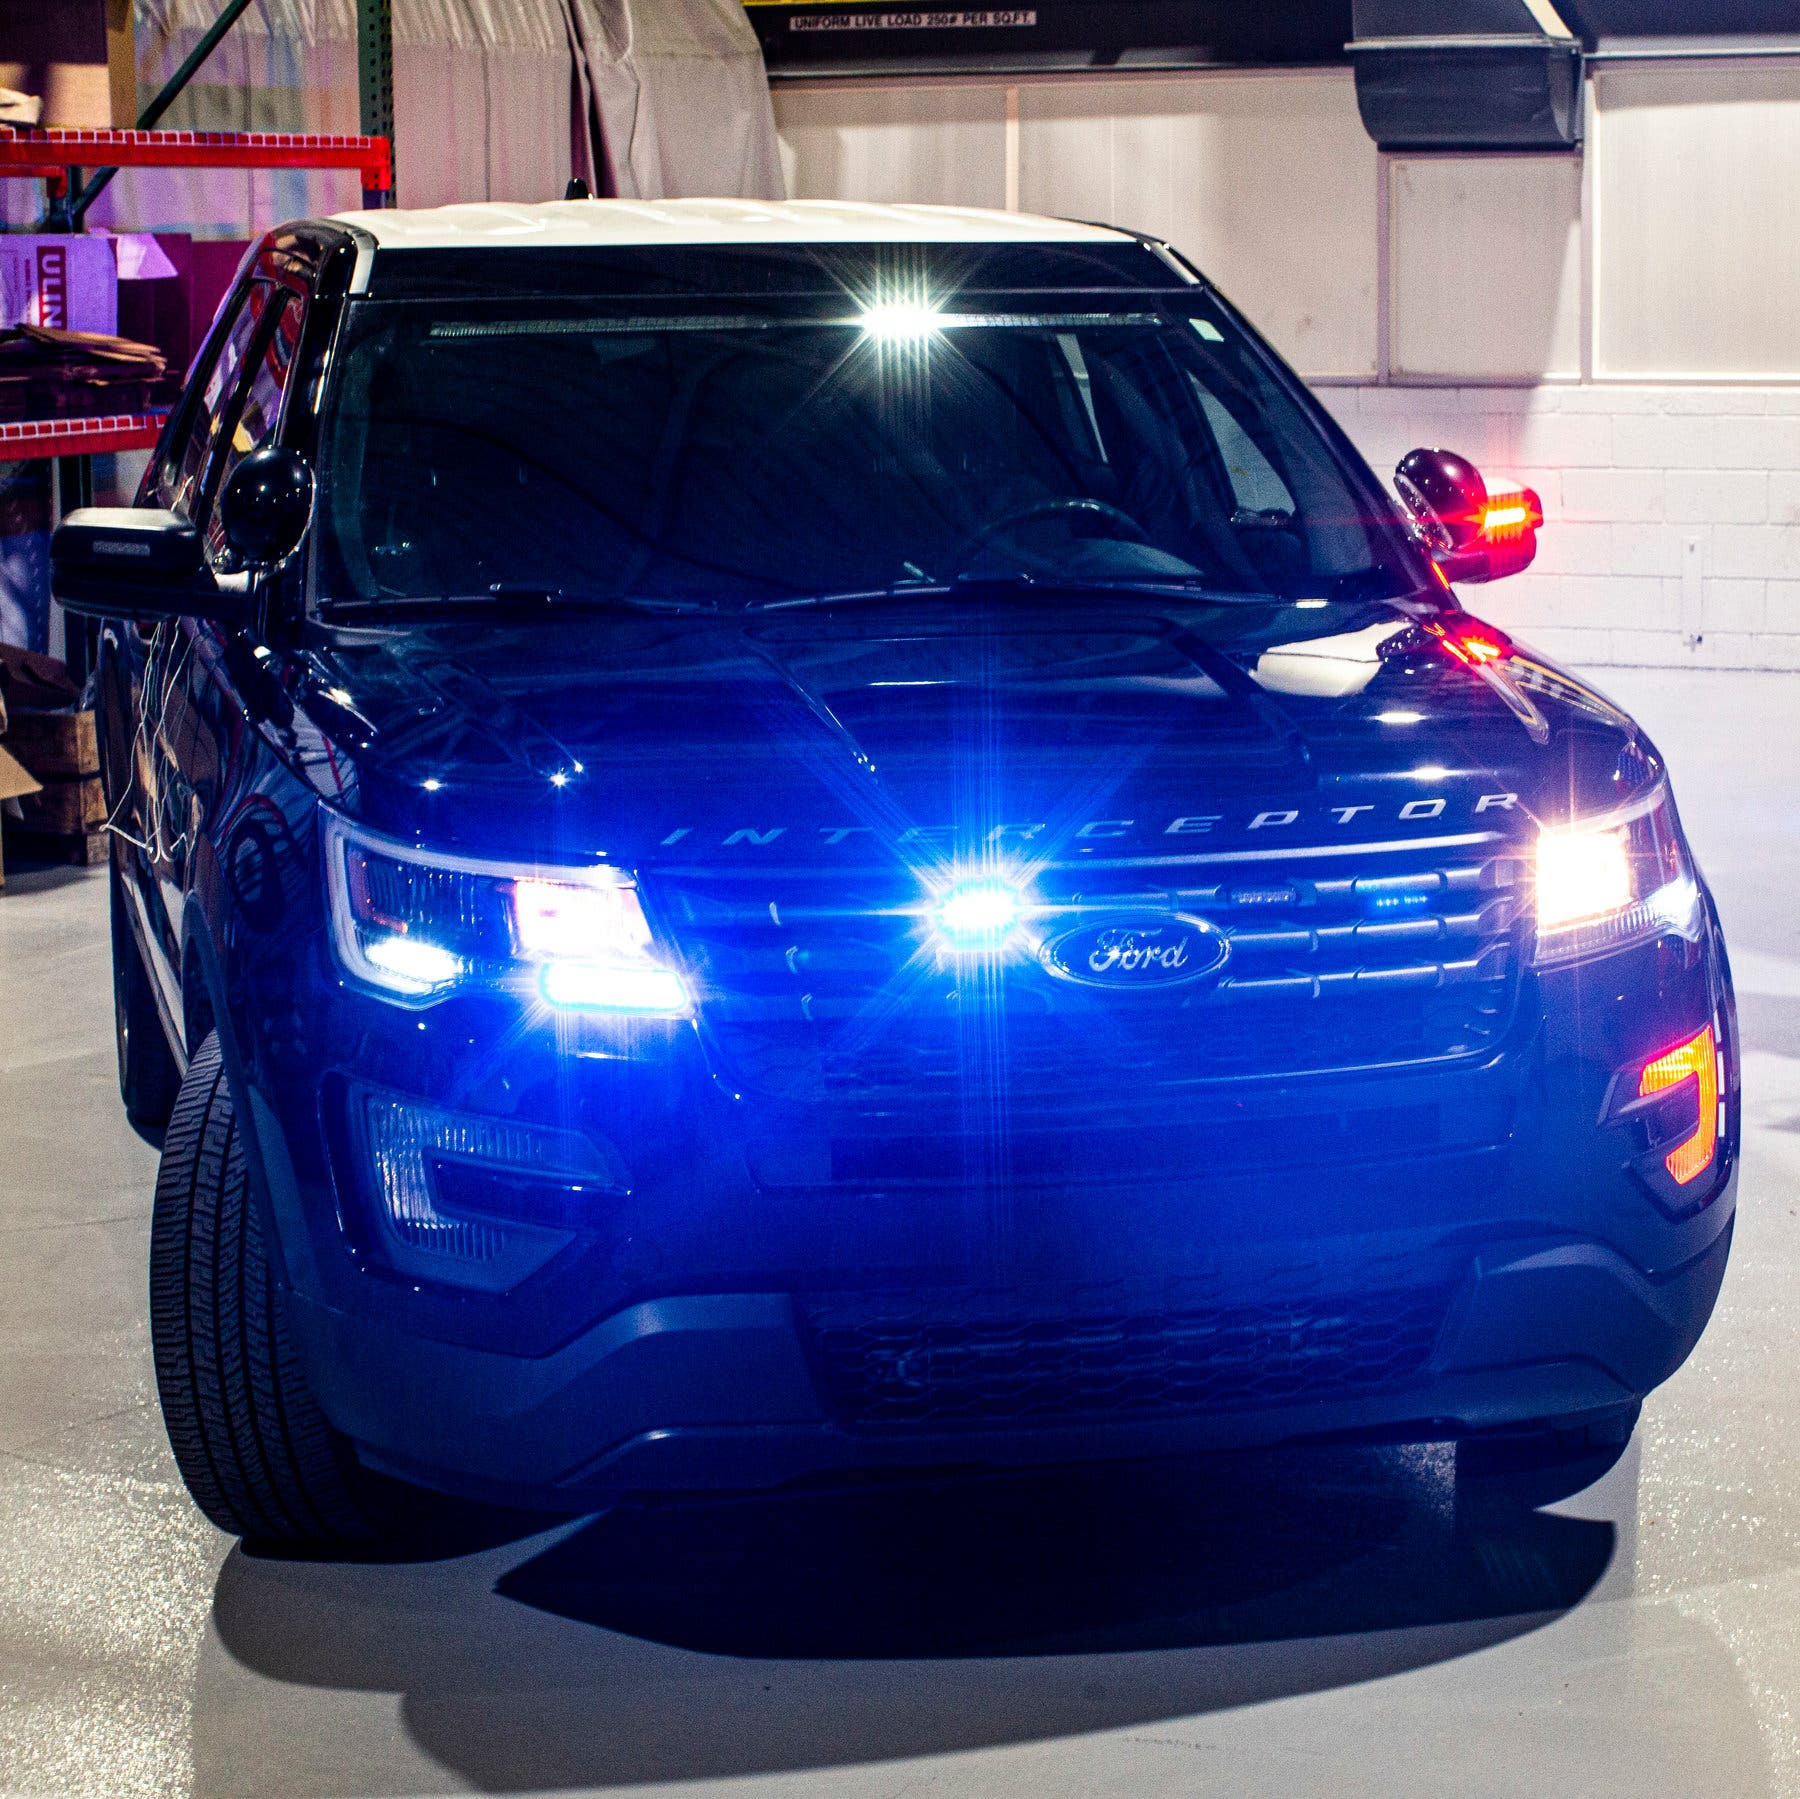 Ford is Sanitizing New York Police SUVs With Software Update